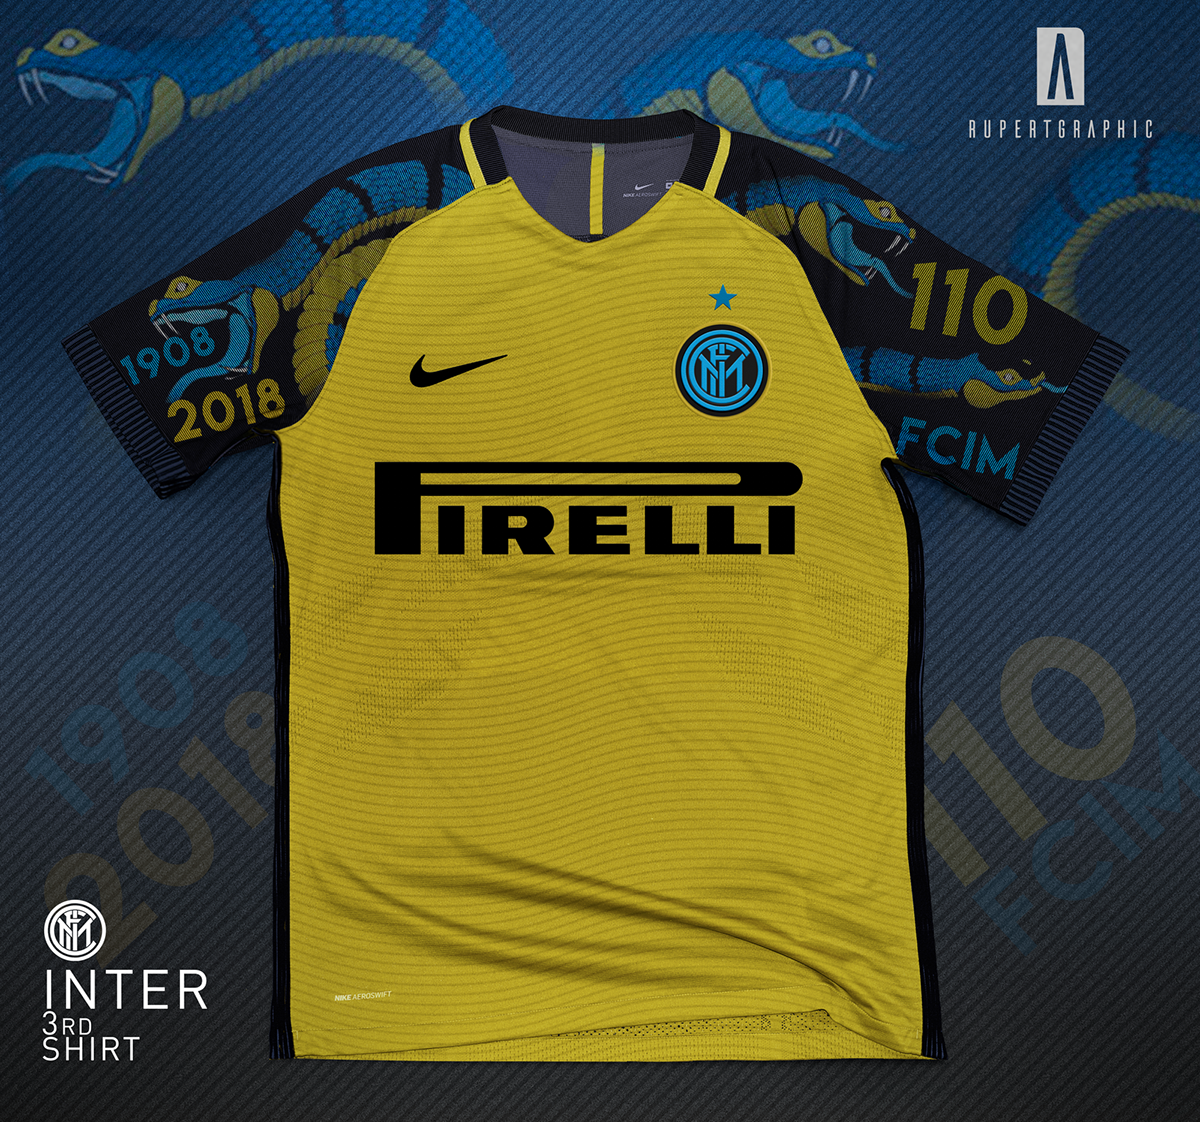 big sale 994de 24e20 Inter 3rd Shirt | Yellow snake Concept on Behance | แบบเสื้อ ...